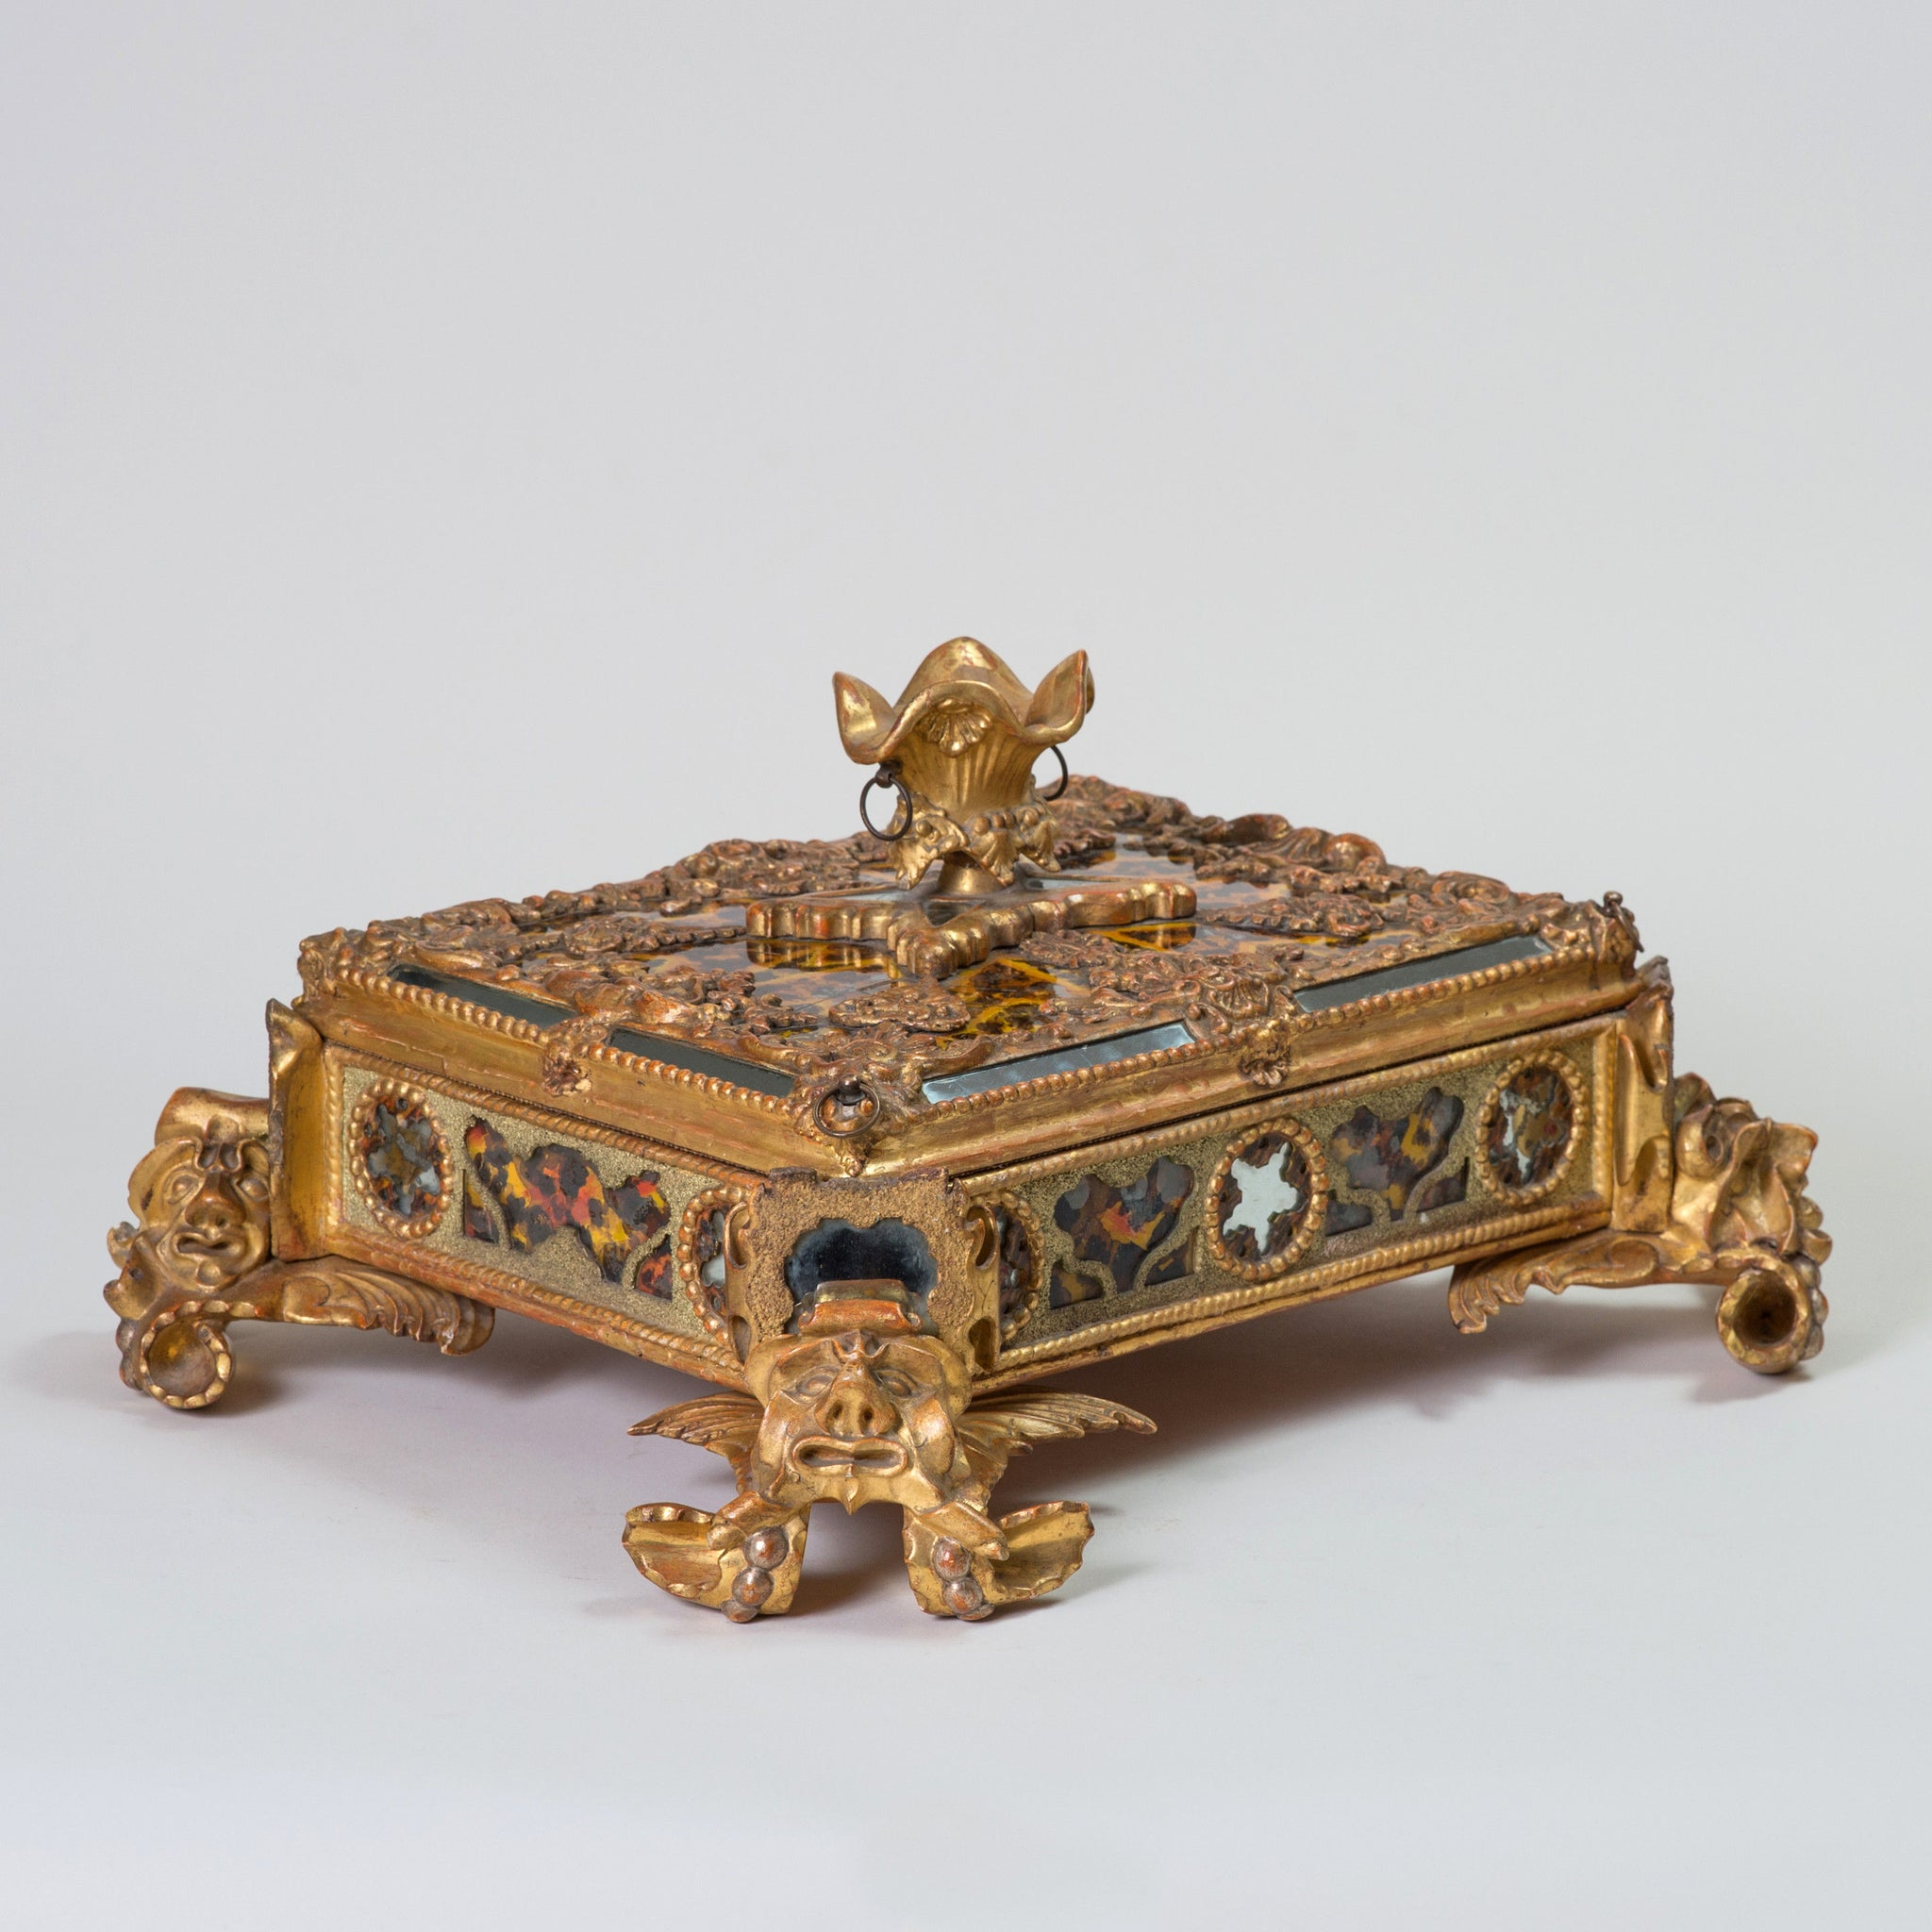 Carved Giltwood, Verre Eglomise, Pastiglia and Crushed Stone-Work Casket